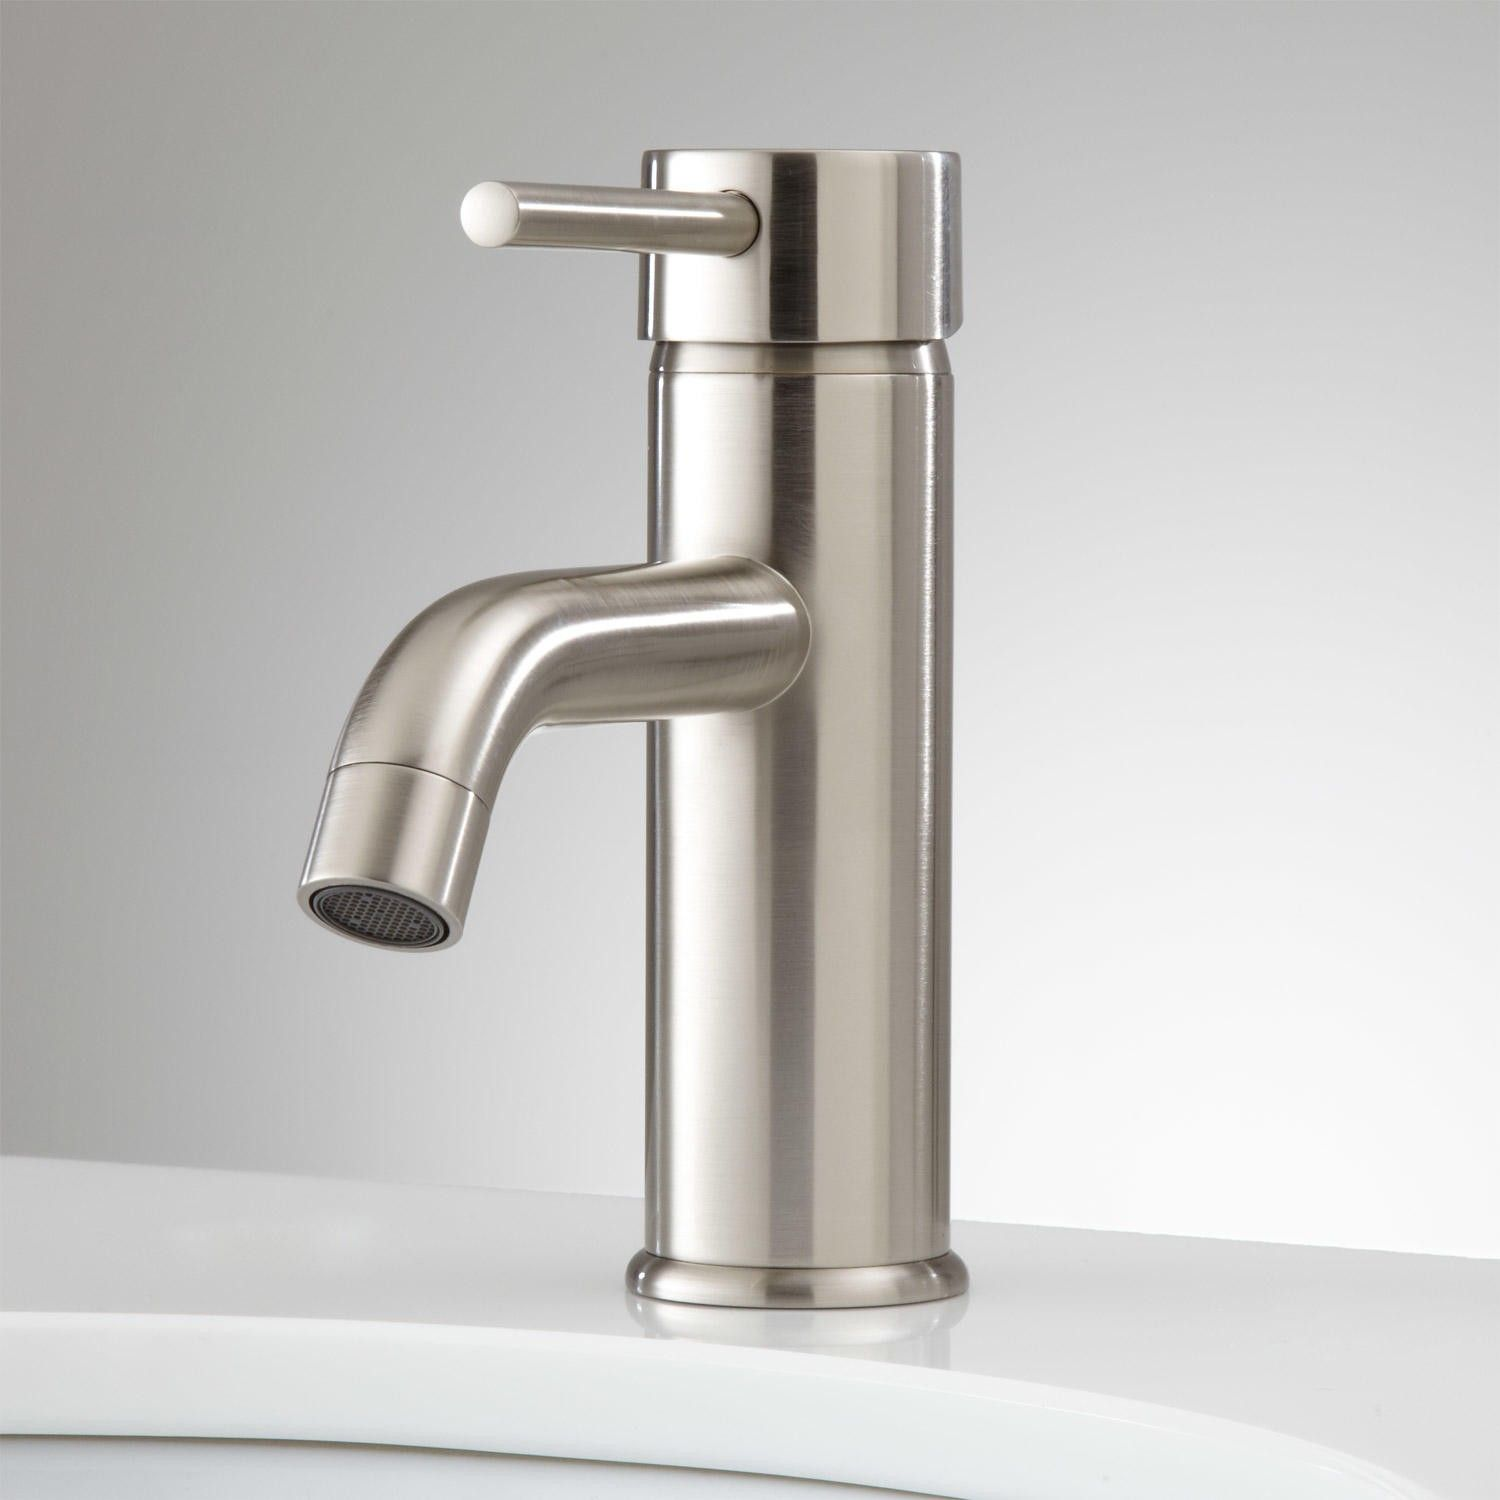 Hewitt Single Hole Bathroom Faucet With Pop Up Drain Looks Like Purist By Kohler Want To Bathroom Faucets Single Hole Bathroom Faucet Kohler Bathroom Faucet